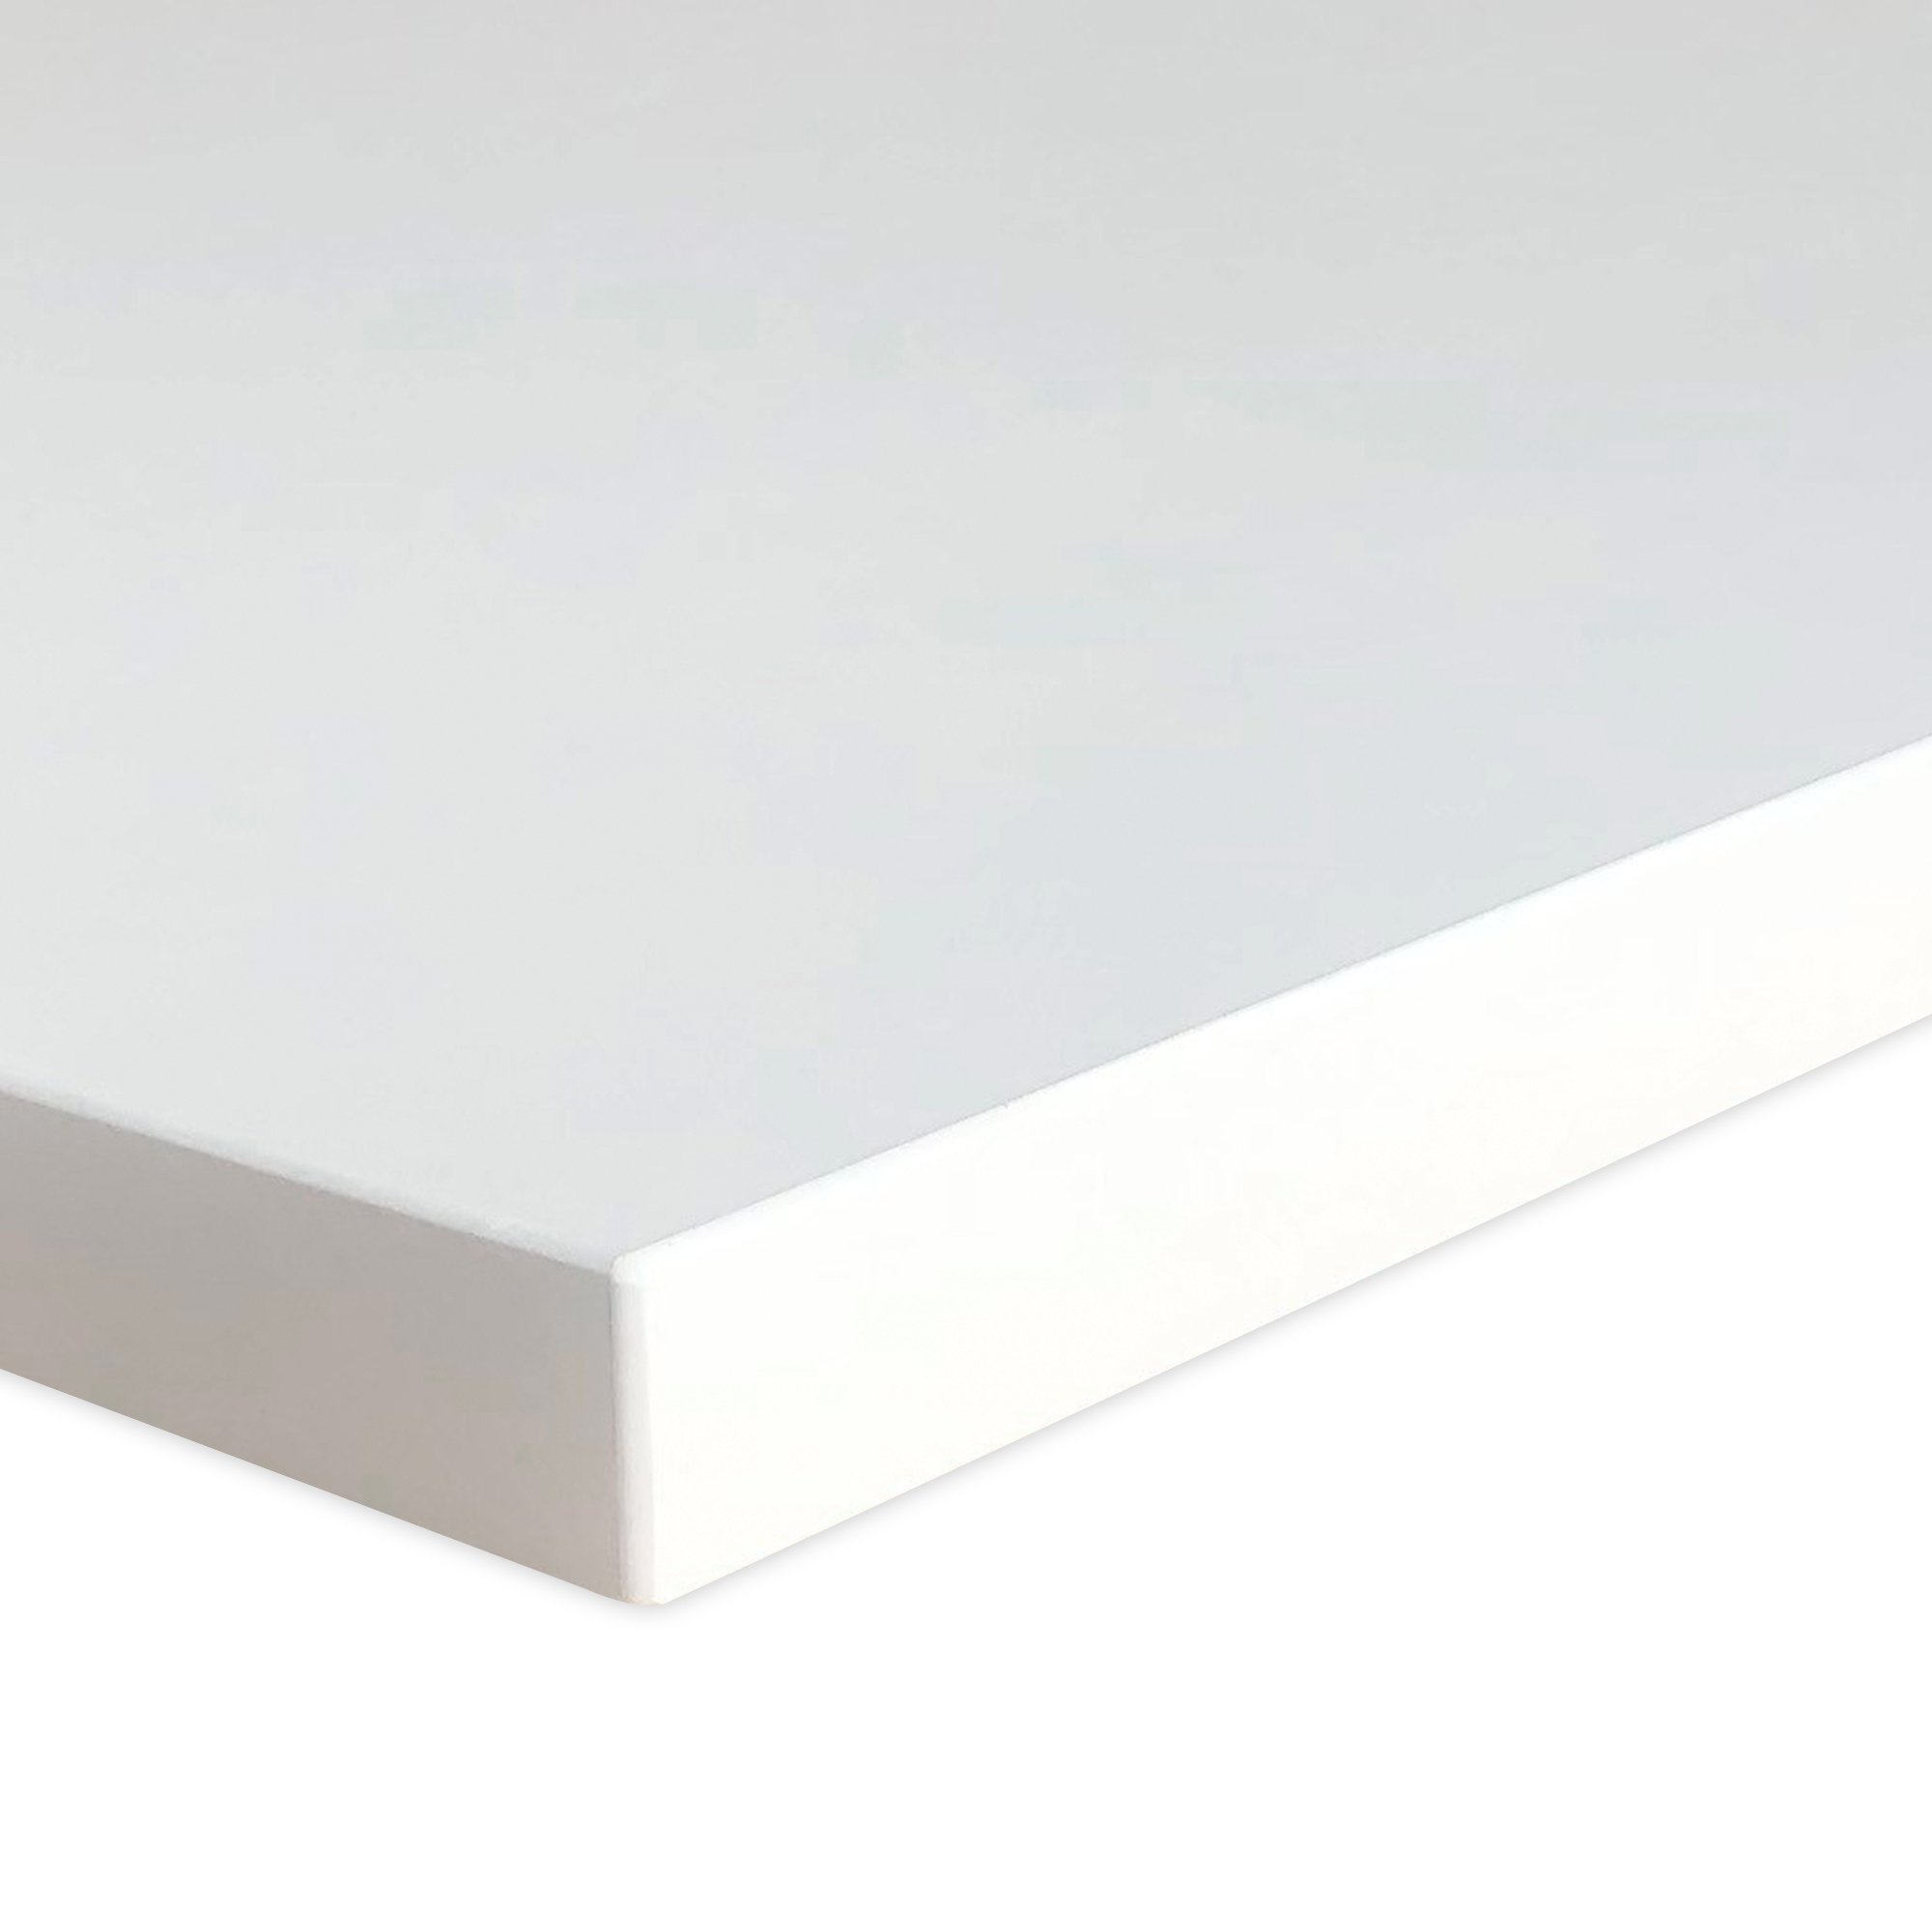 Tabletop | 100x60 cm | White